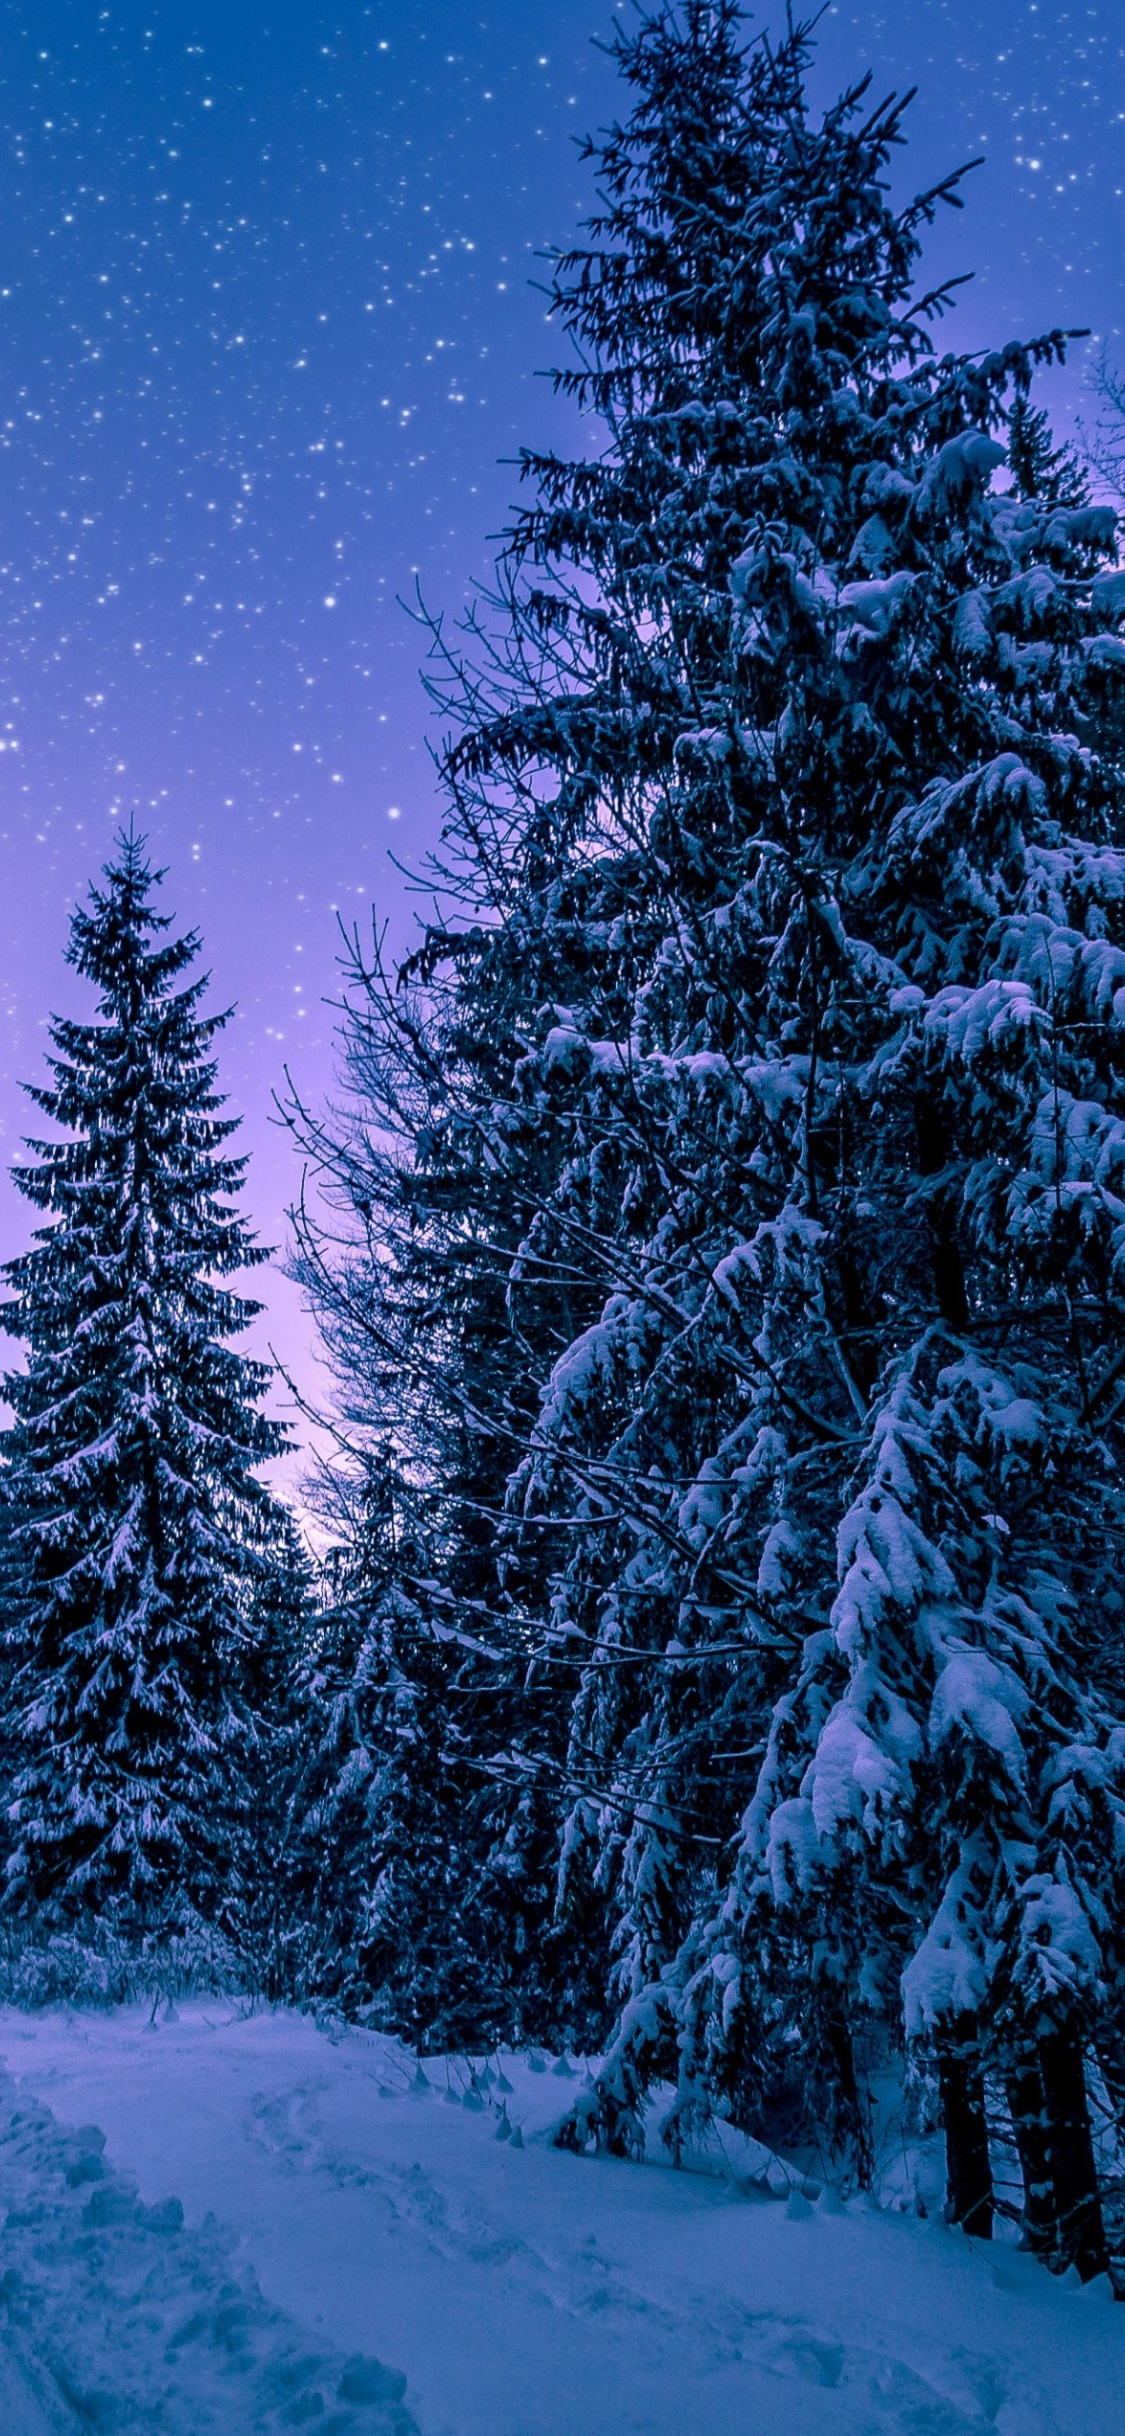 Forest Trees Night Winter Wallpaper Iphone 11 Wallpaper 4k 1125x2436 Wallpaper Teahub Io